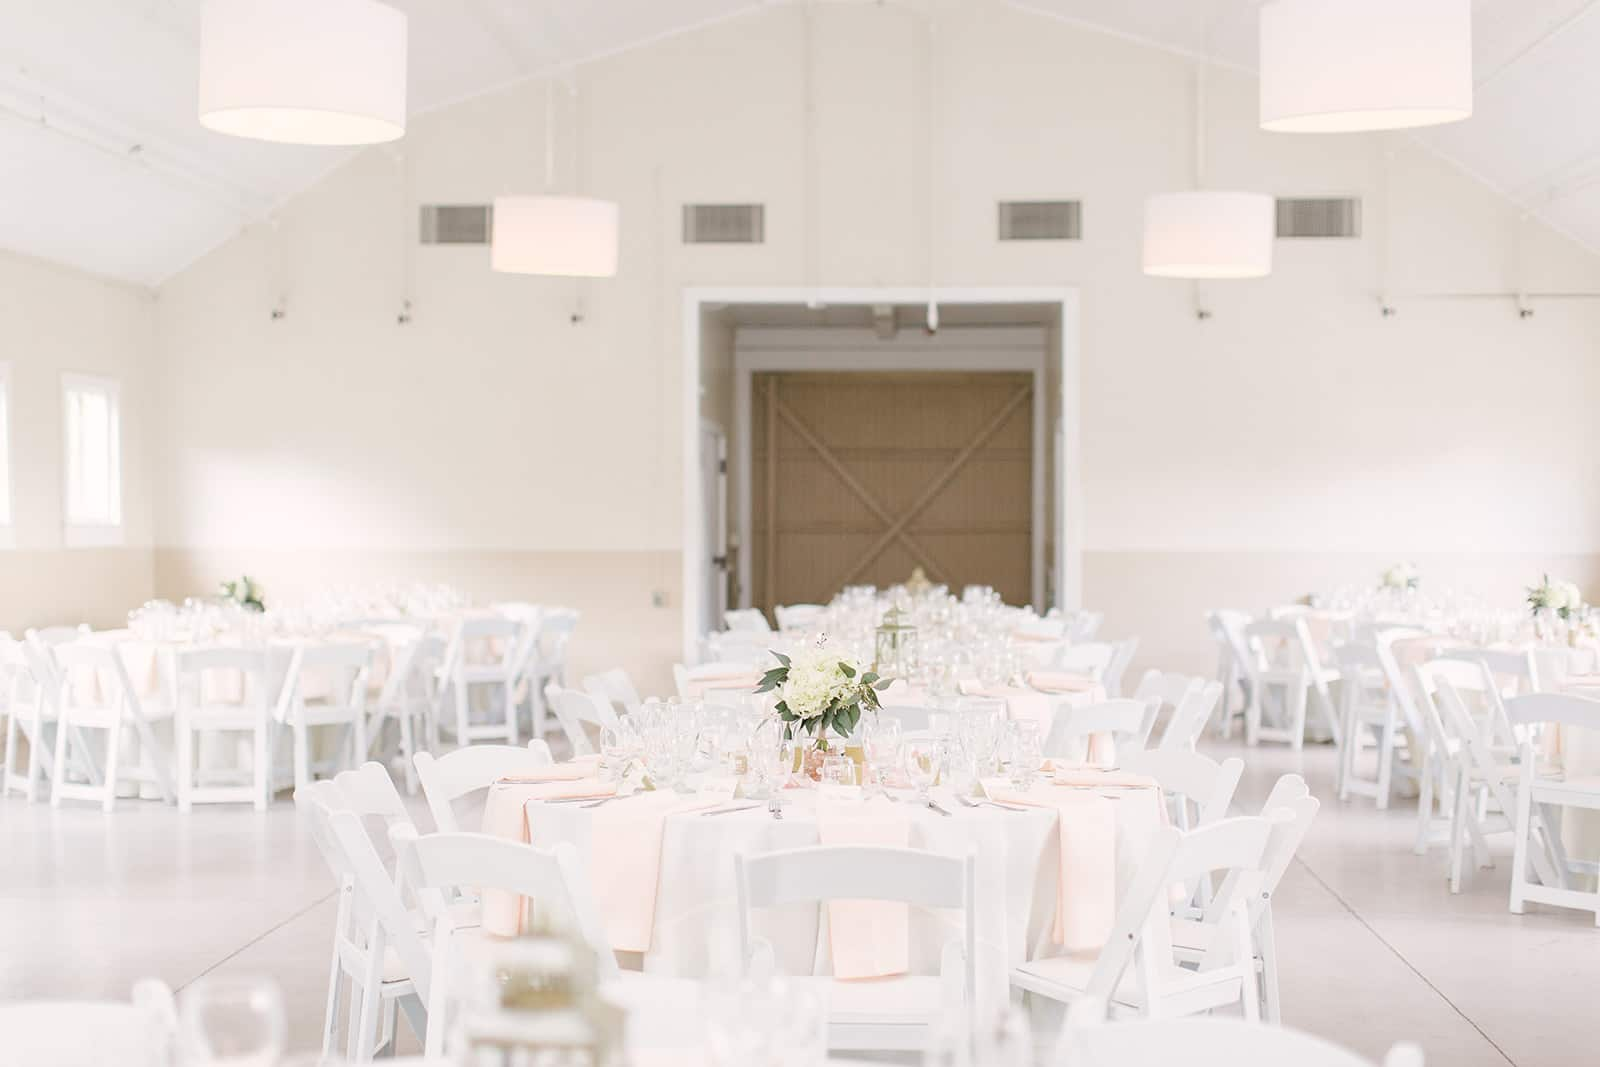 Reception space for a spring wedding at The Diary Barn features white linens, pale pink napkins, and white rose centerpieces all coordinated by Magnificent Moments Weddings